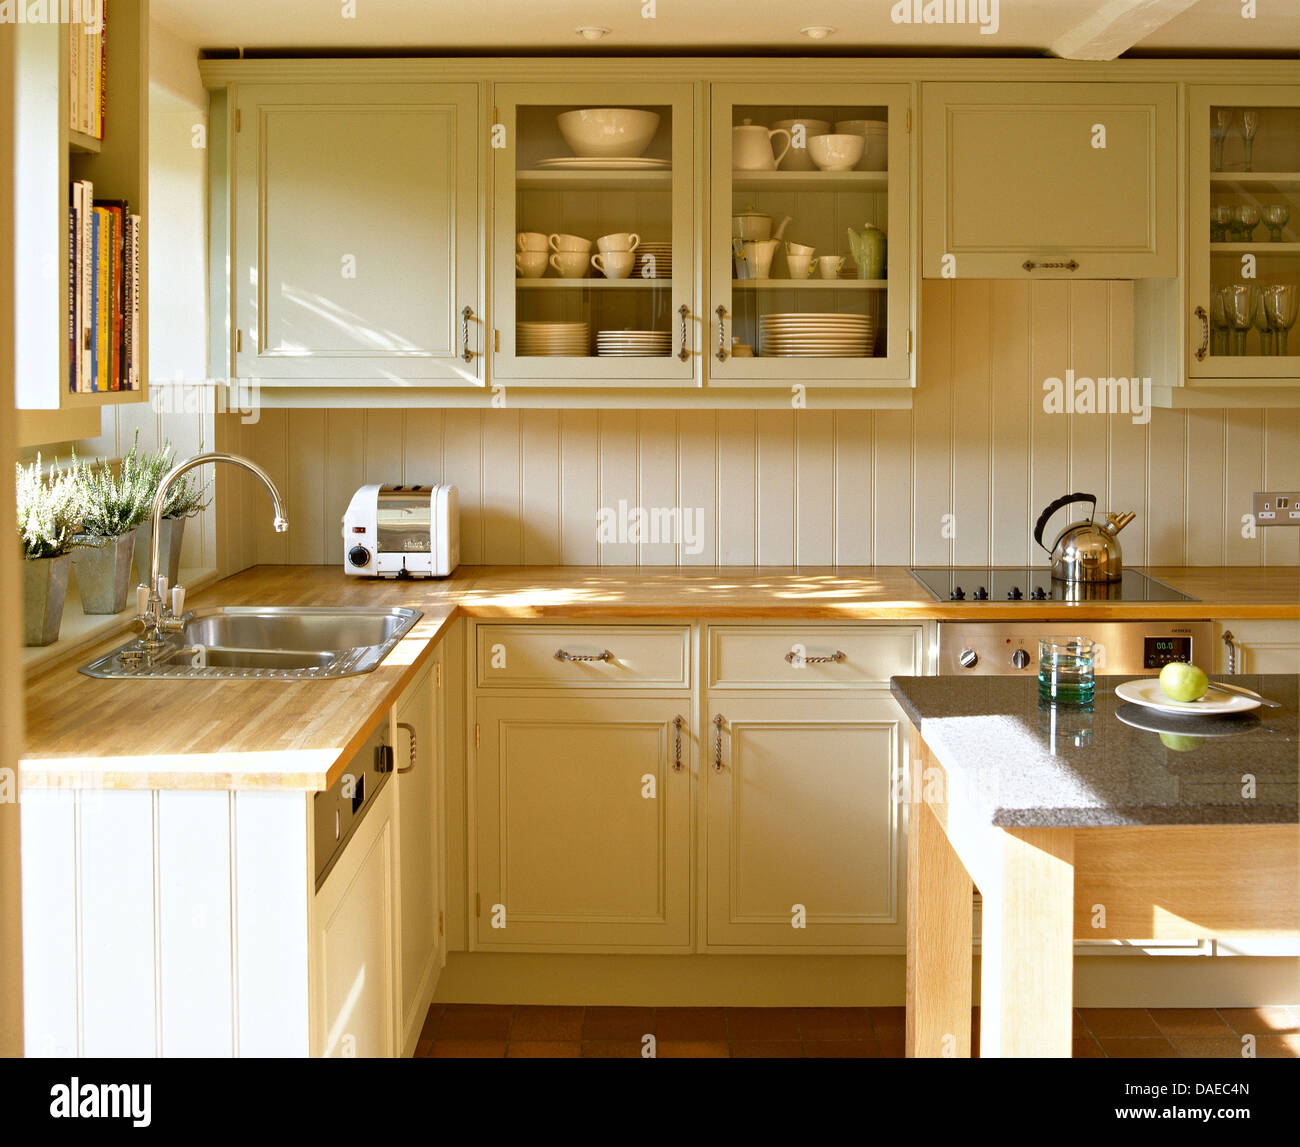 Beech Worktops On Cream Painted Units And Wall Cupboard In Shaker Style Country Kitchen With Dualit Toaster On Worktop